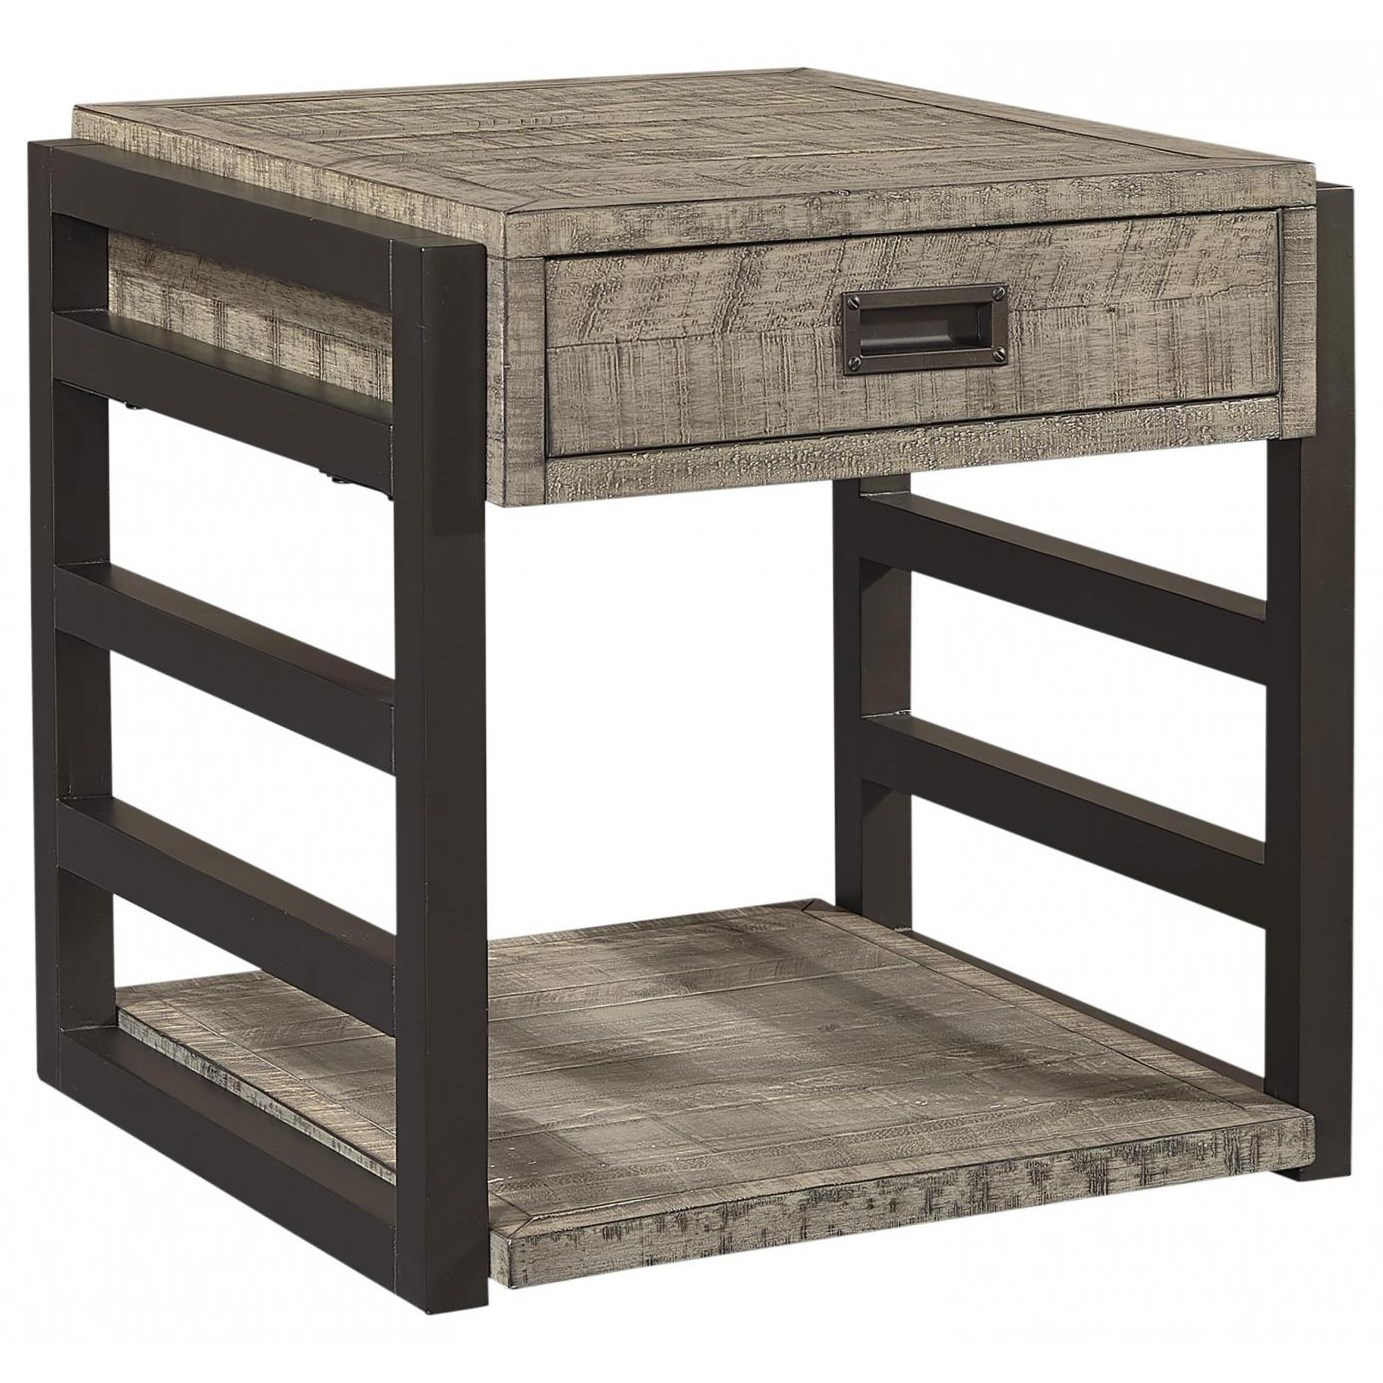 Grayson End Table by Aspenhome at Stoney Creek Furniture